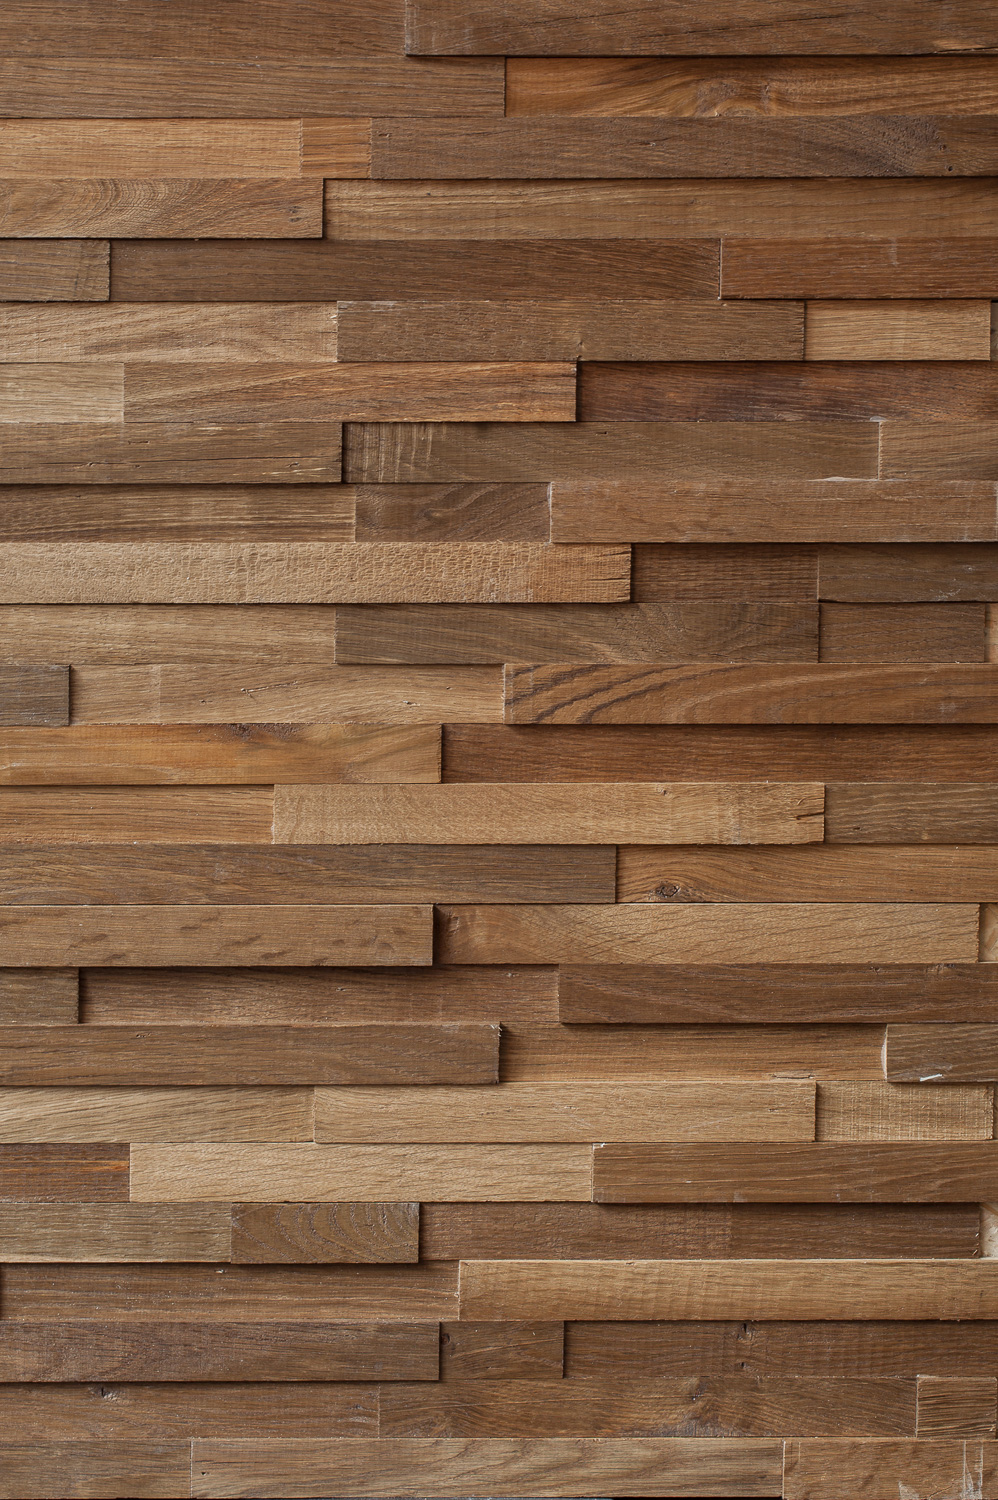 Wood Plank Wall Cladding : Reclaimed engineered oak strip cladding oiled the new